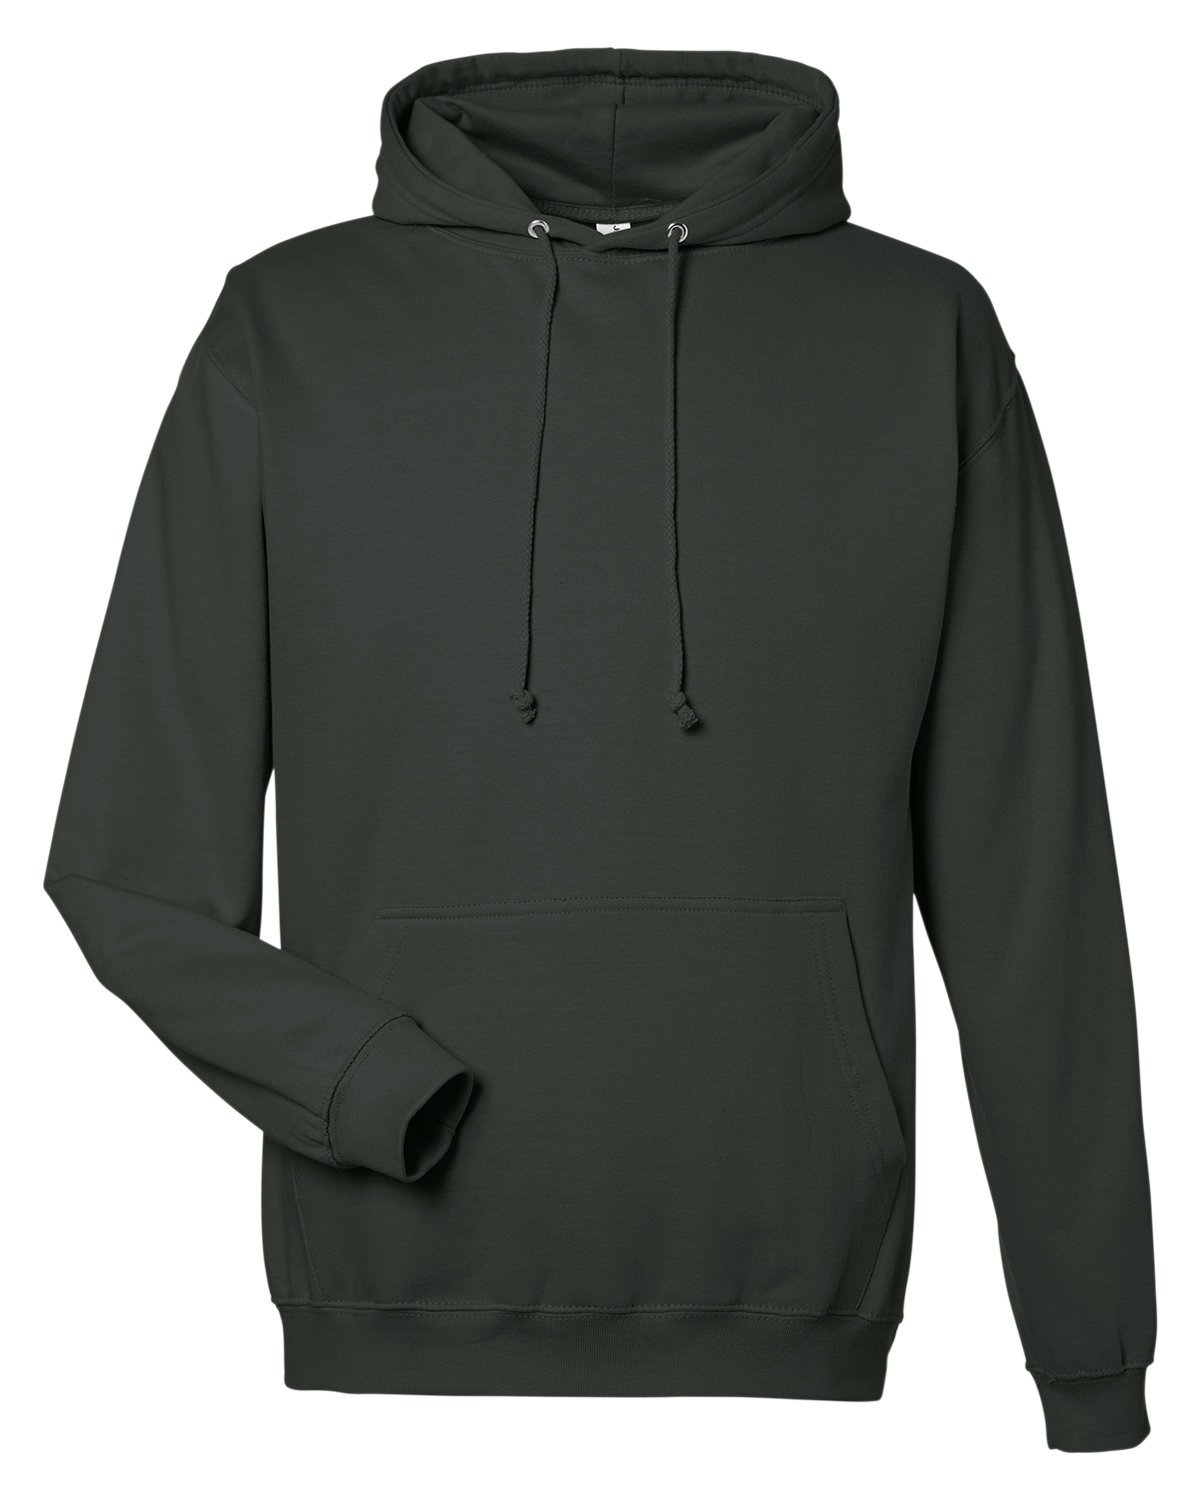 Just Hoods By AWDis Men's 80/20 Midweight College Hooded Sweatshirt CHARCOAL